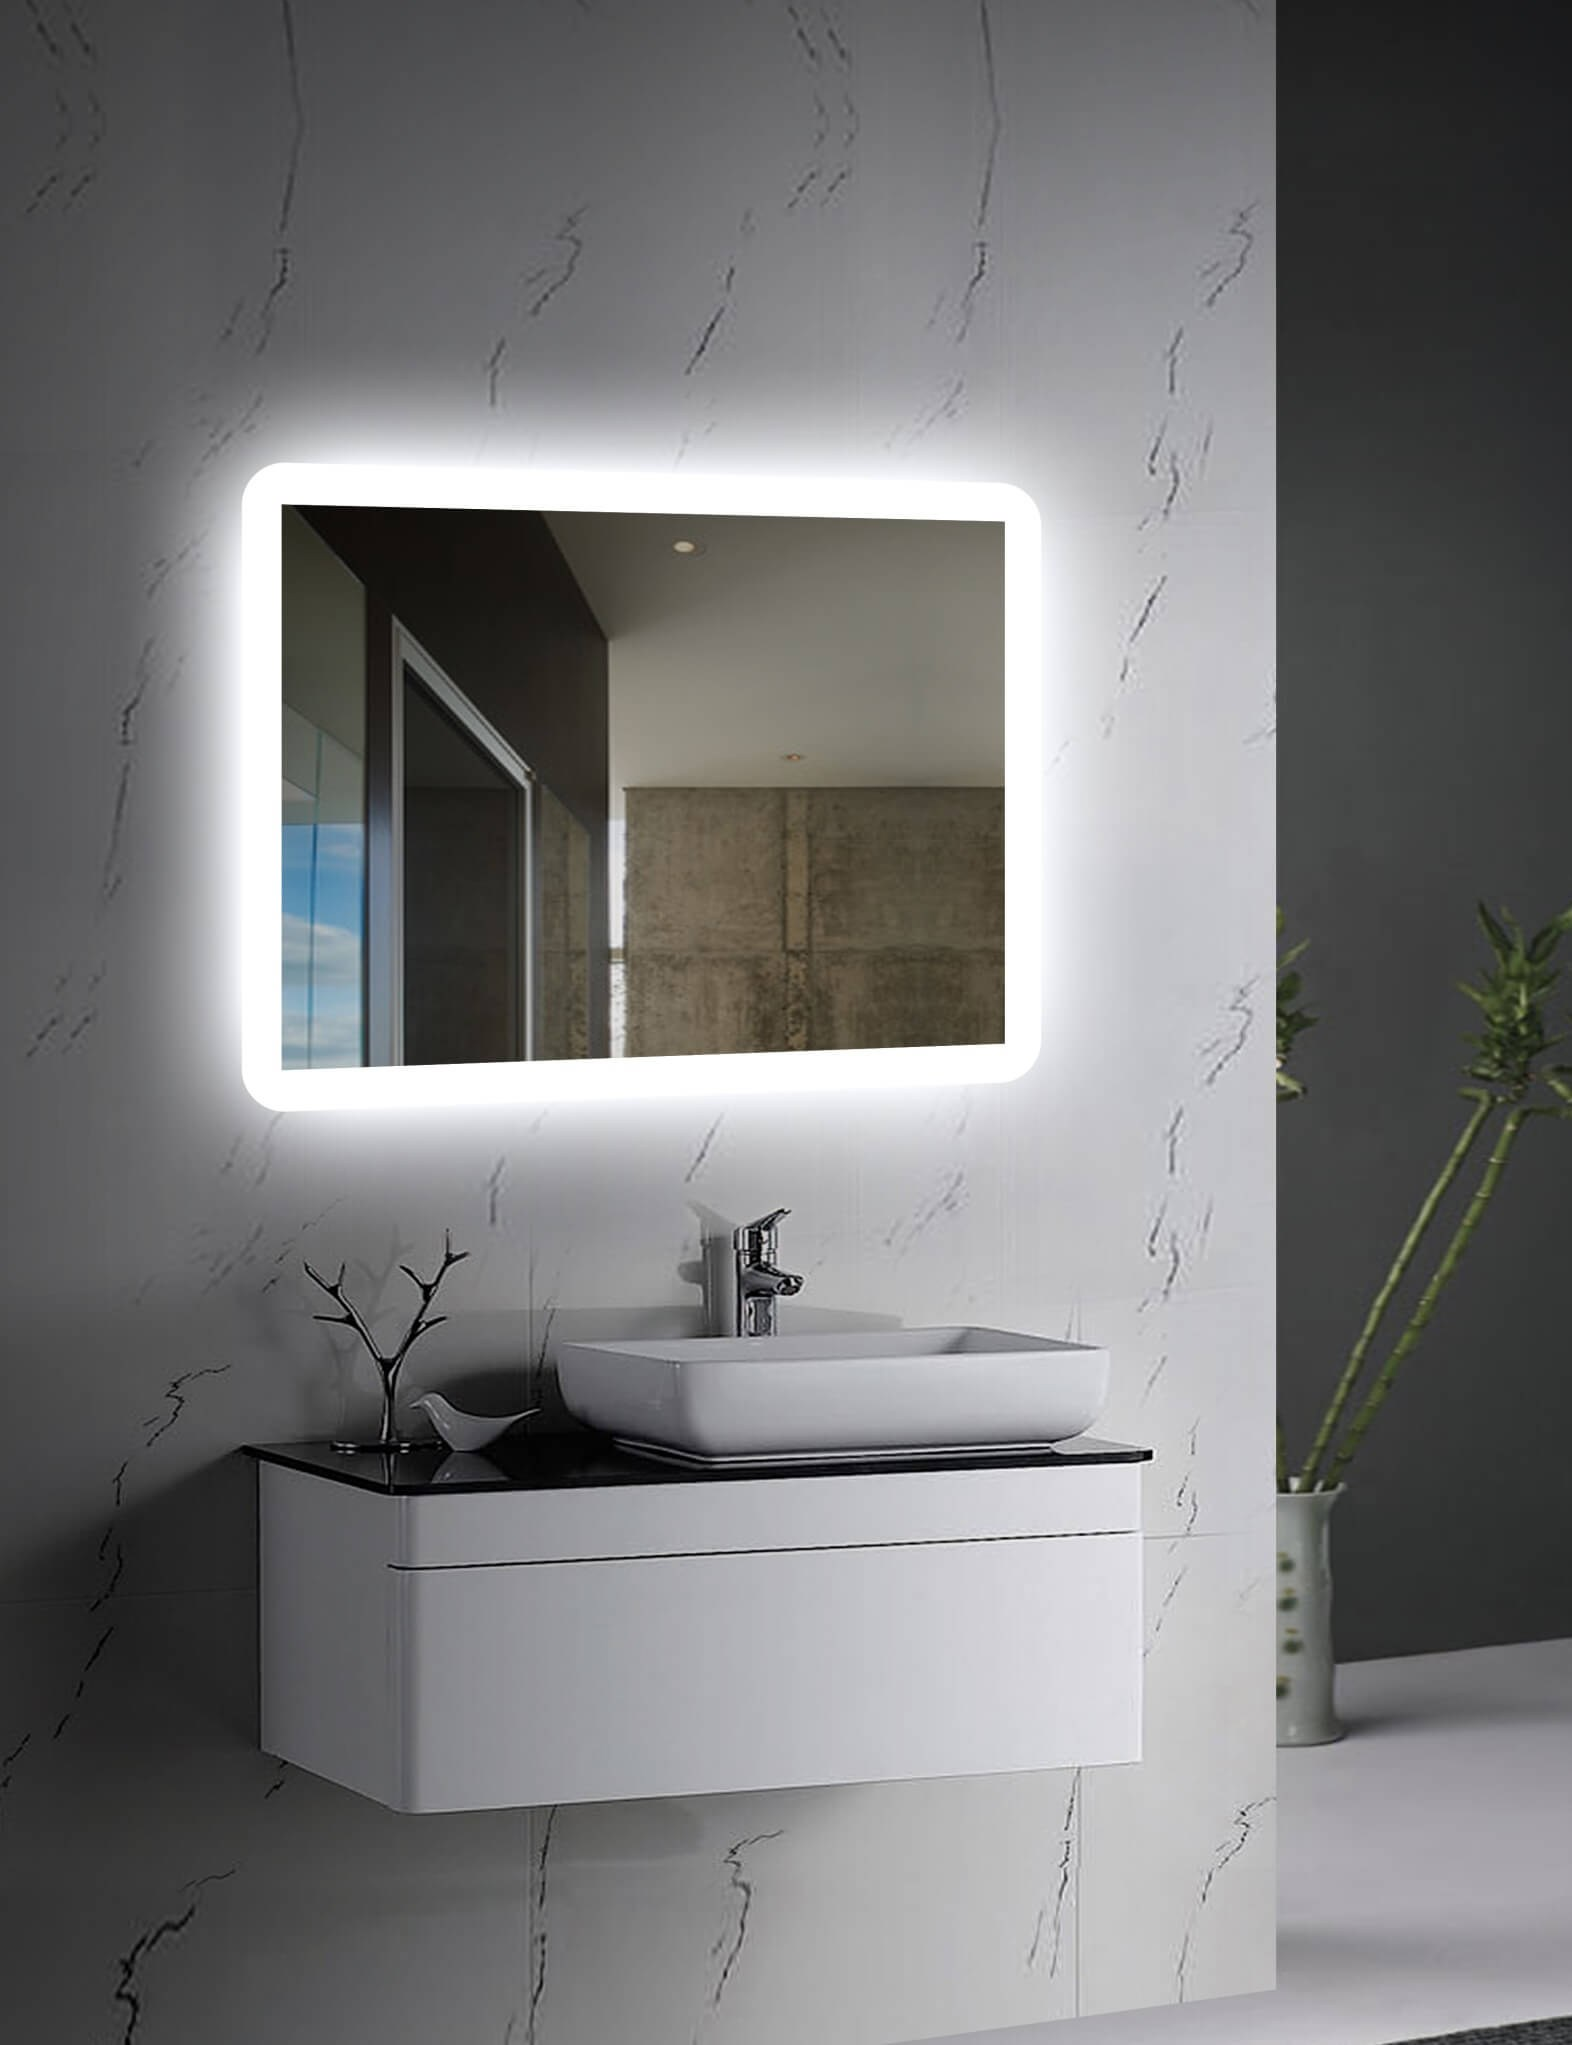 THE PERFECT LED MIRROR FOR YOUR HOME